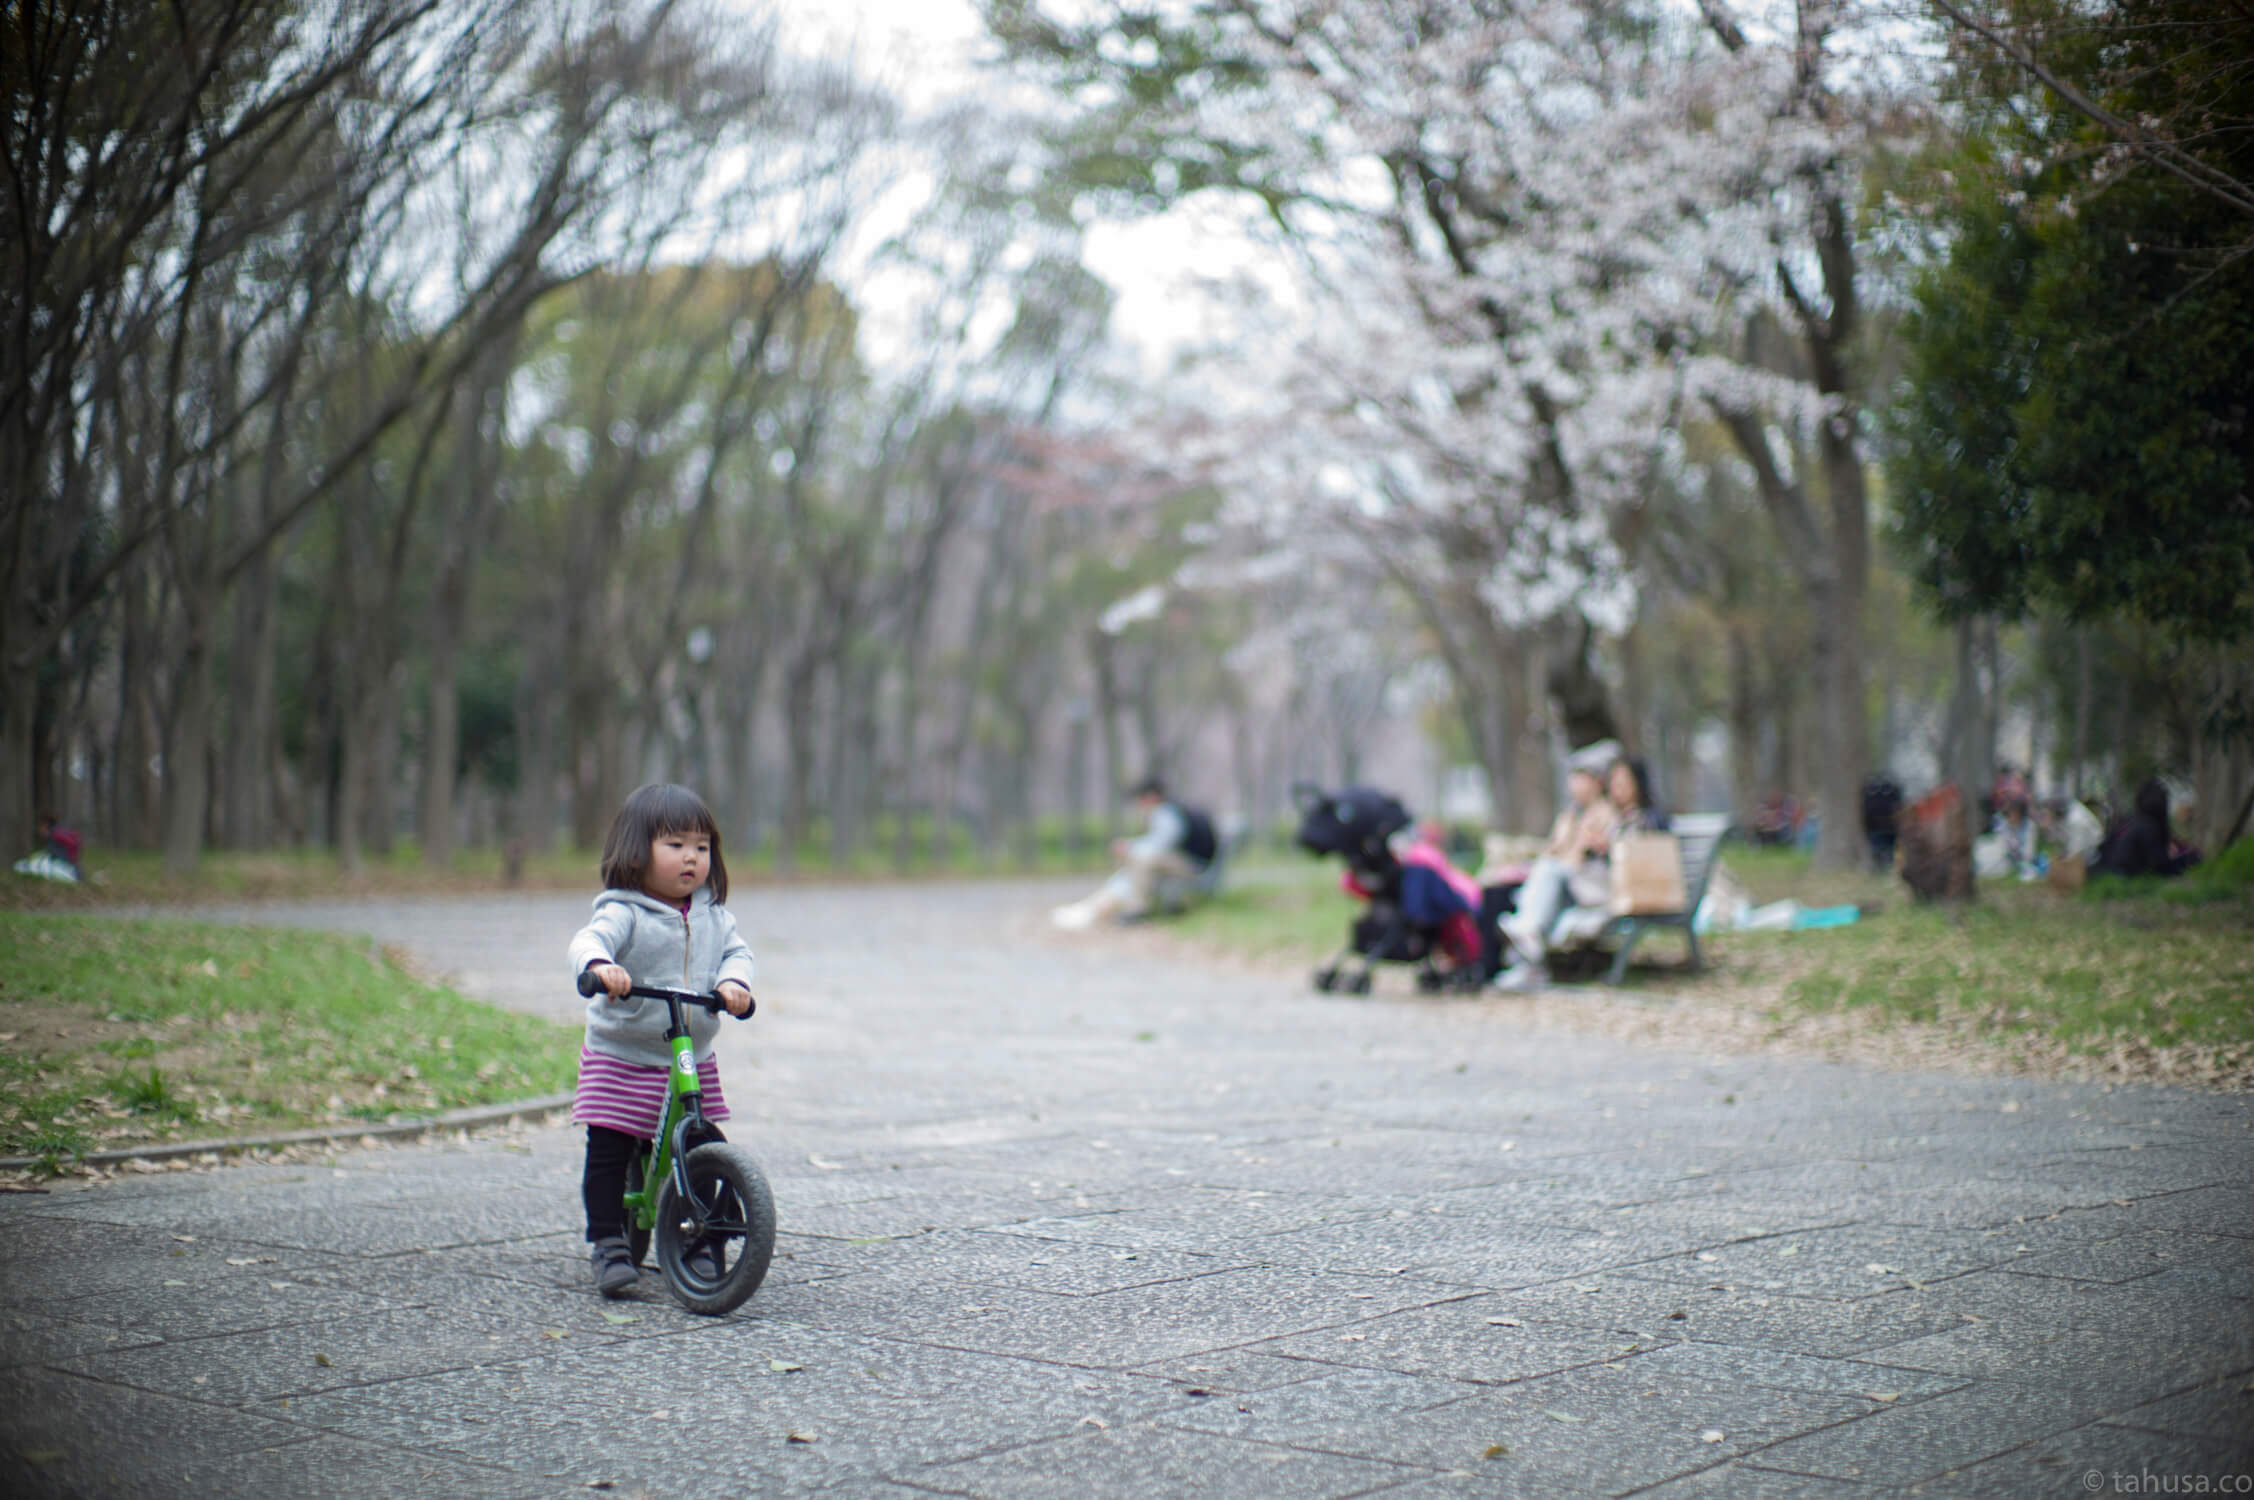 Cute-girl-cycling-inside-osaka-castle-park-japan-japanese-street-snap-portrait-using-leica-m9-m9p-Noctilux-50mm-50-f1-f1.0-e58-v1-digital-camera